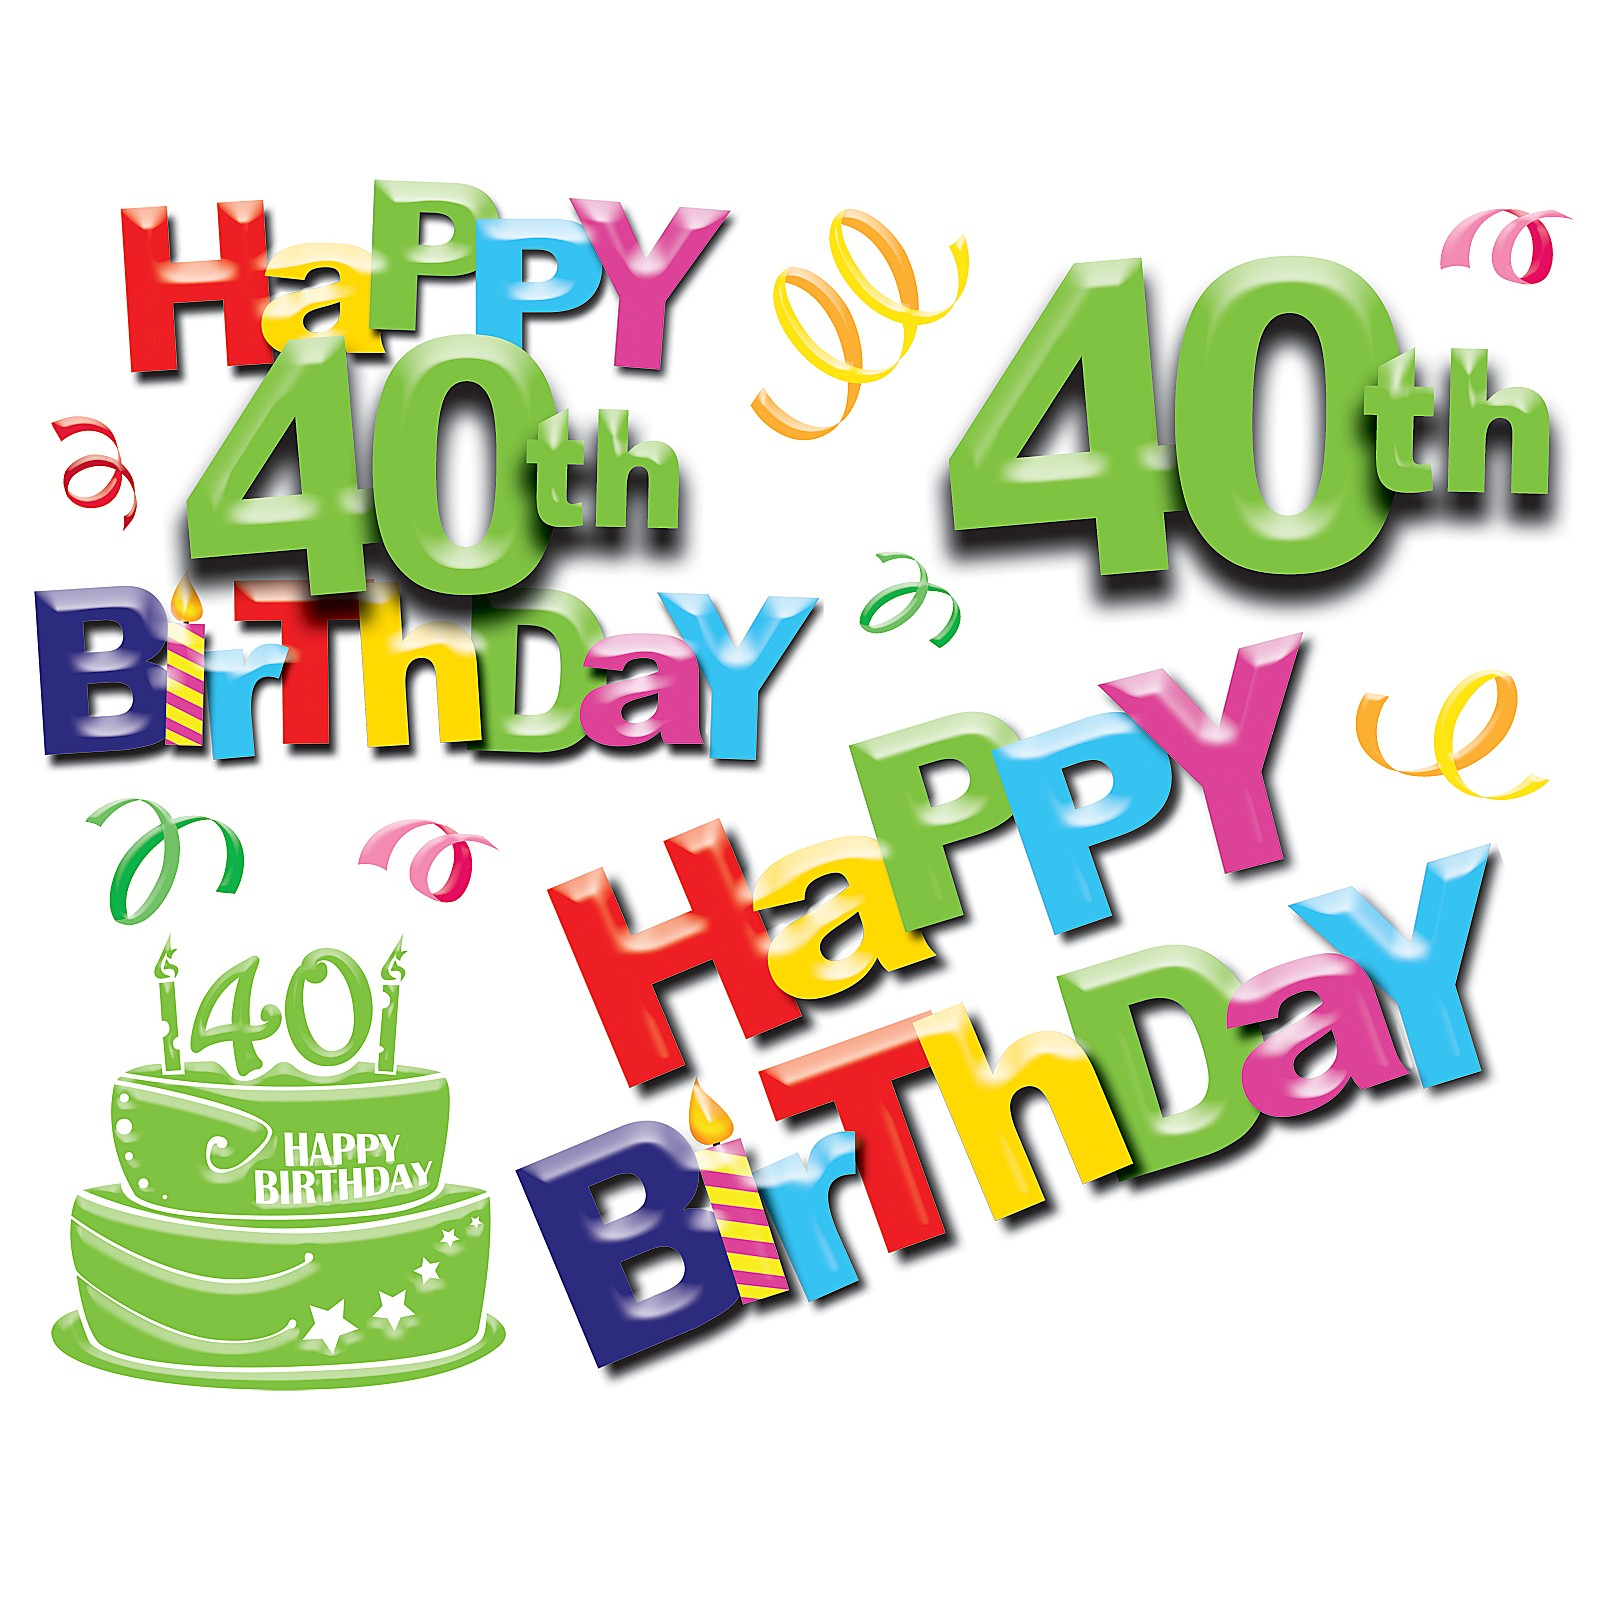 30th birthday clip art images ; 40-birthday-clipart-9